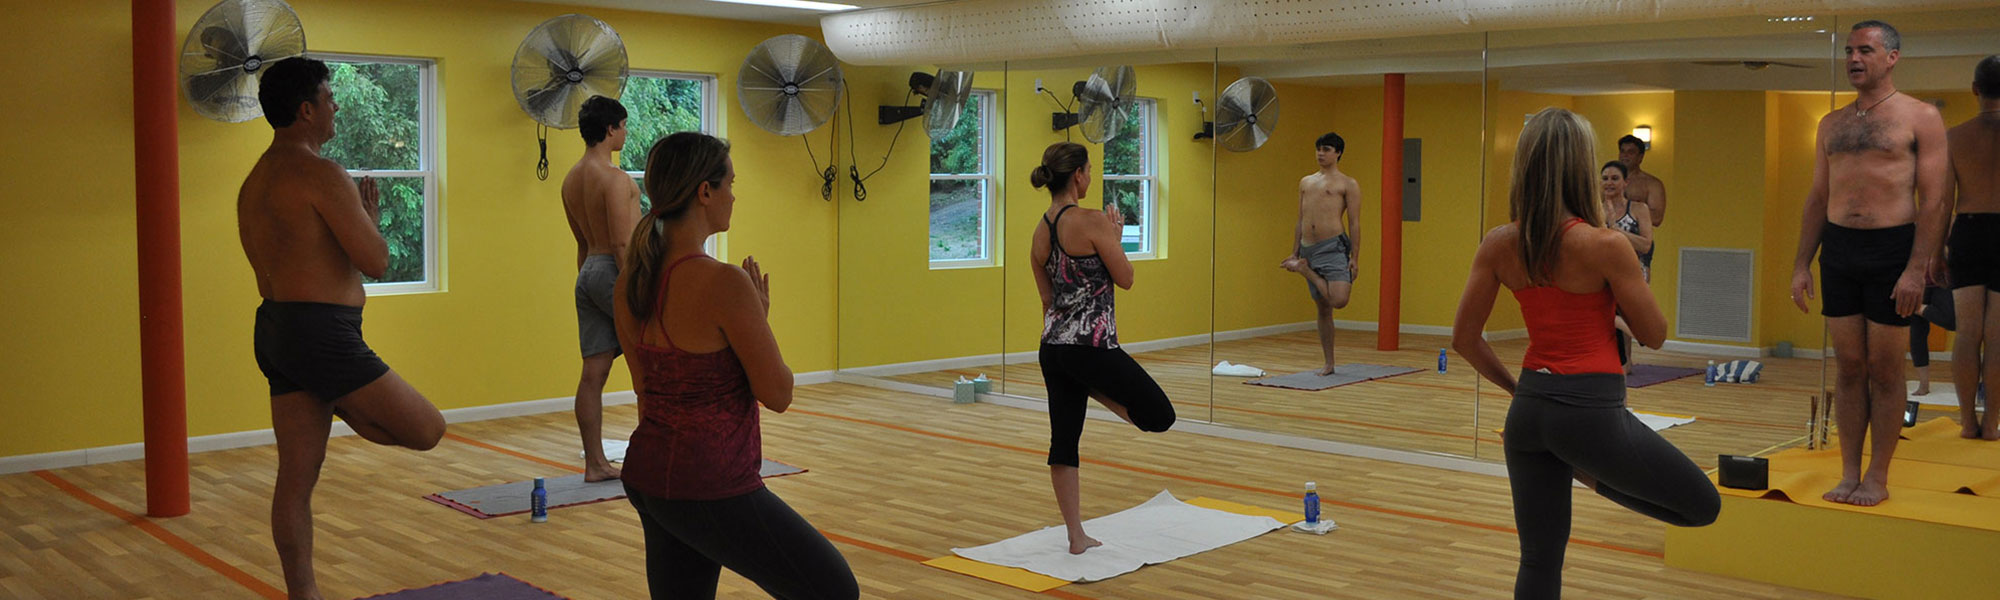 Yoga Class in Session at Bikram Yoga Roslyn